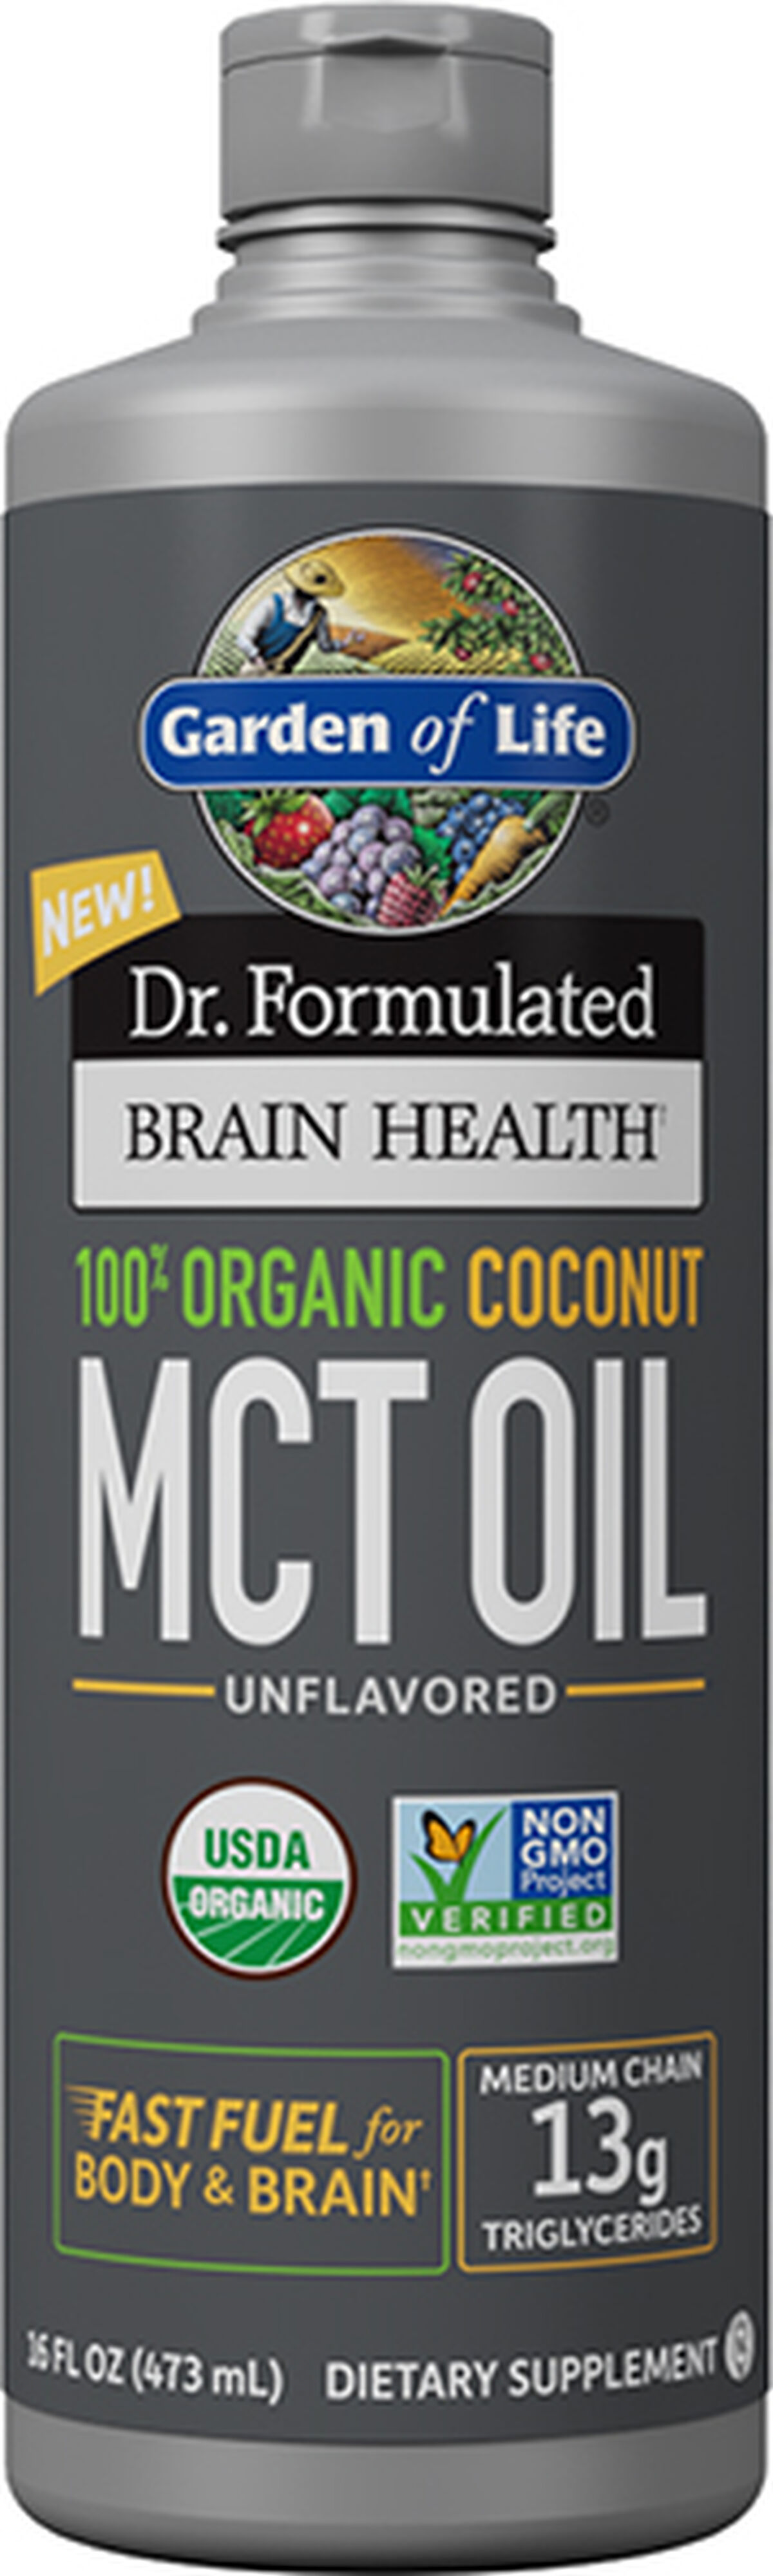 Image Result For Garden Of Life Mct Oil